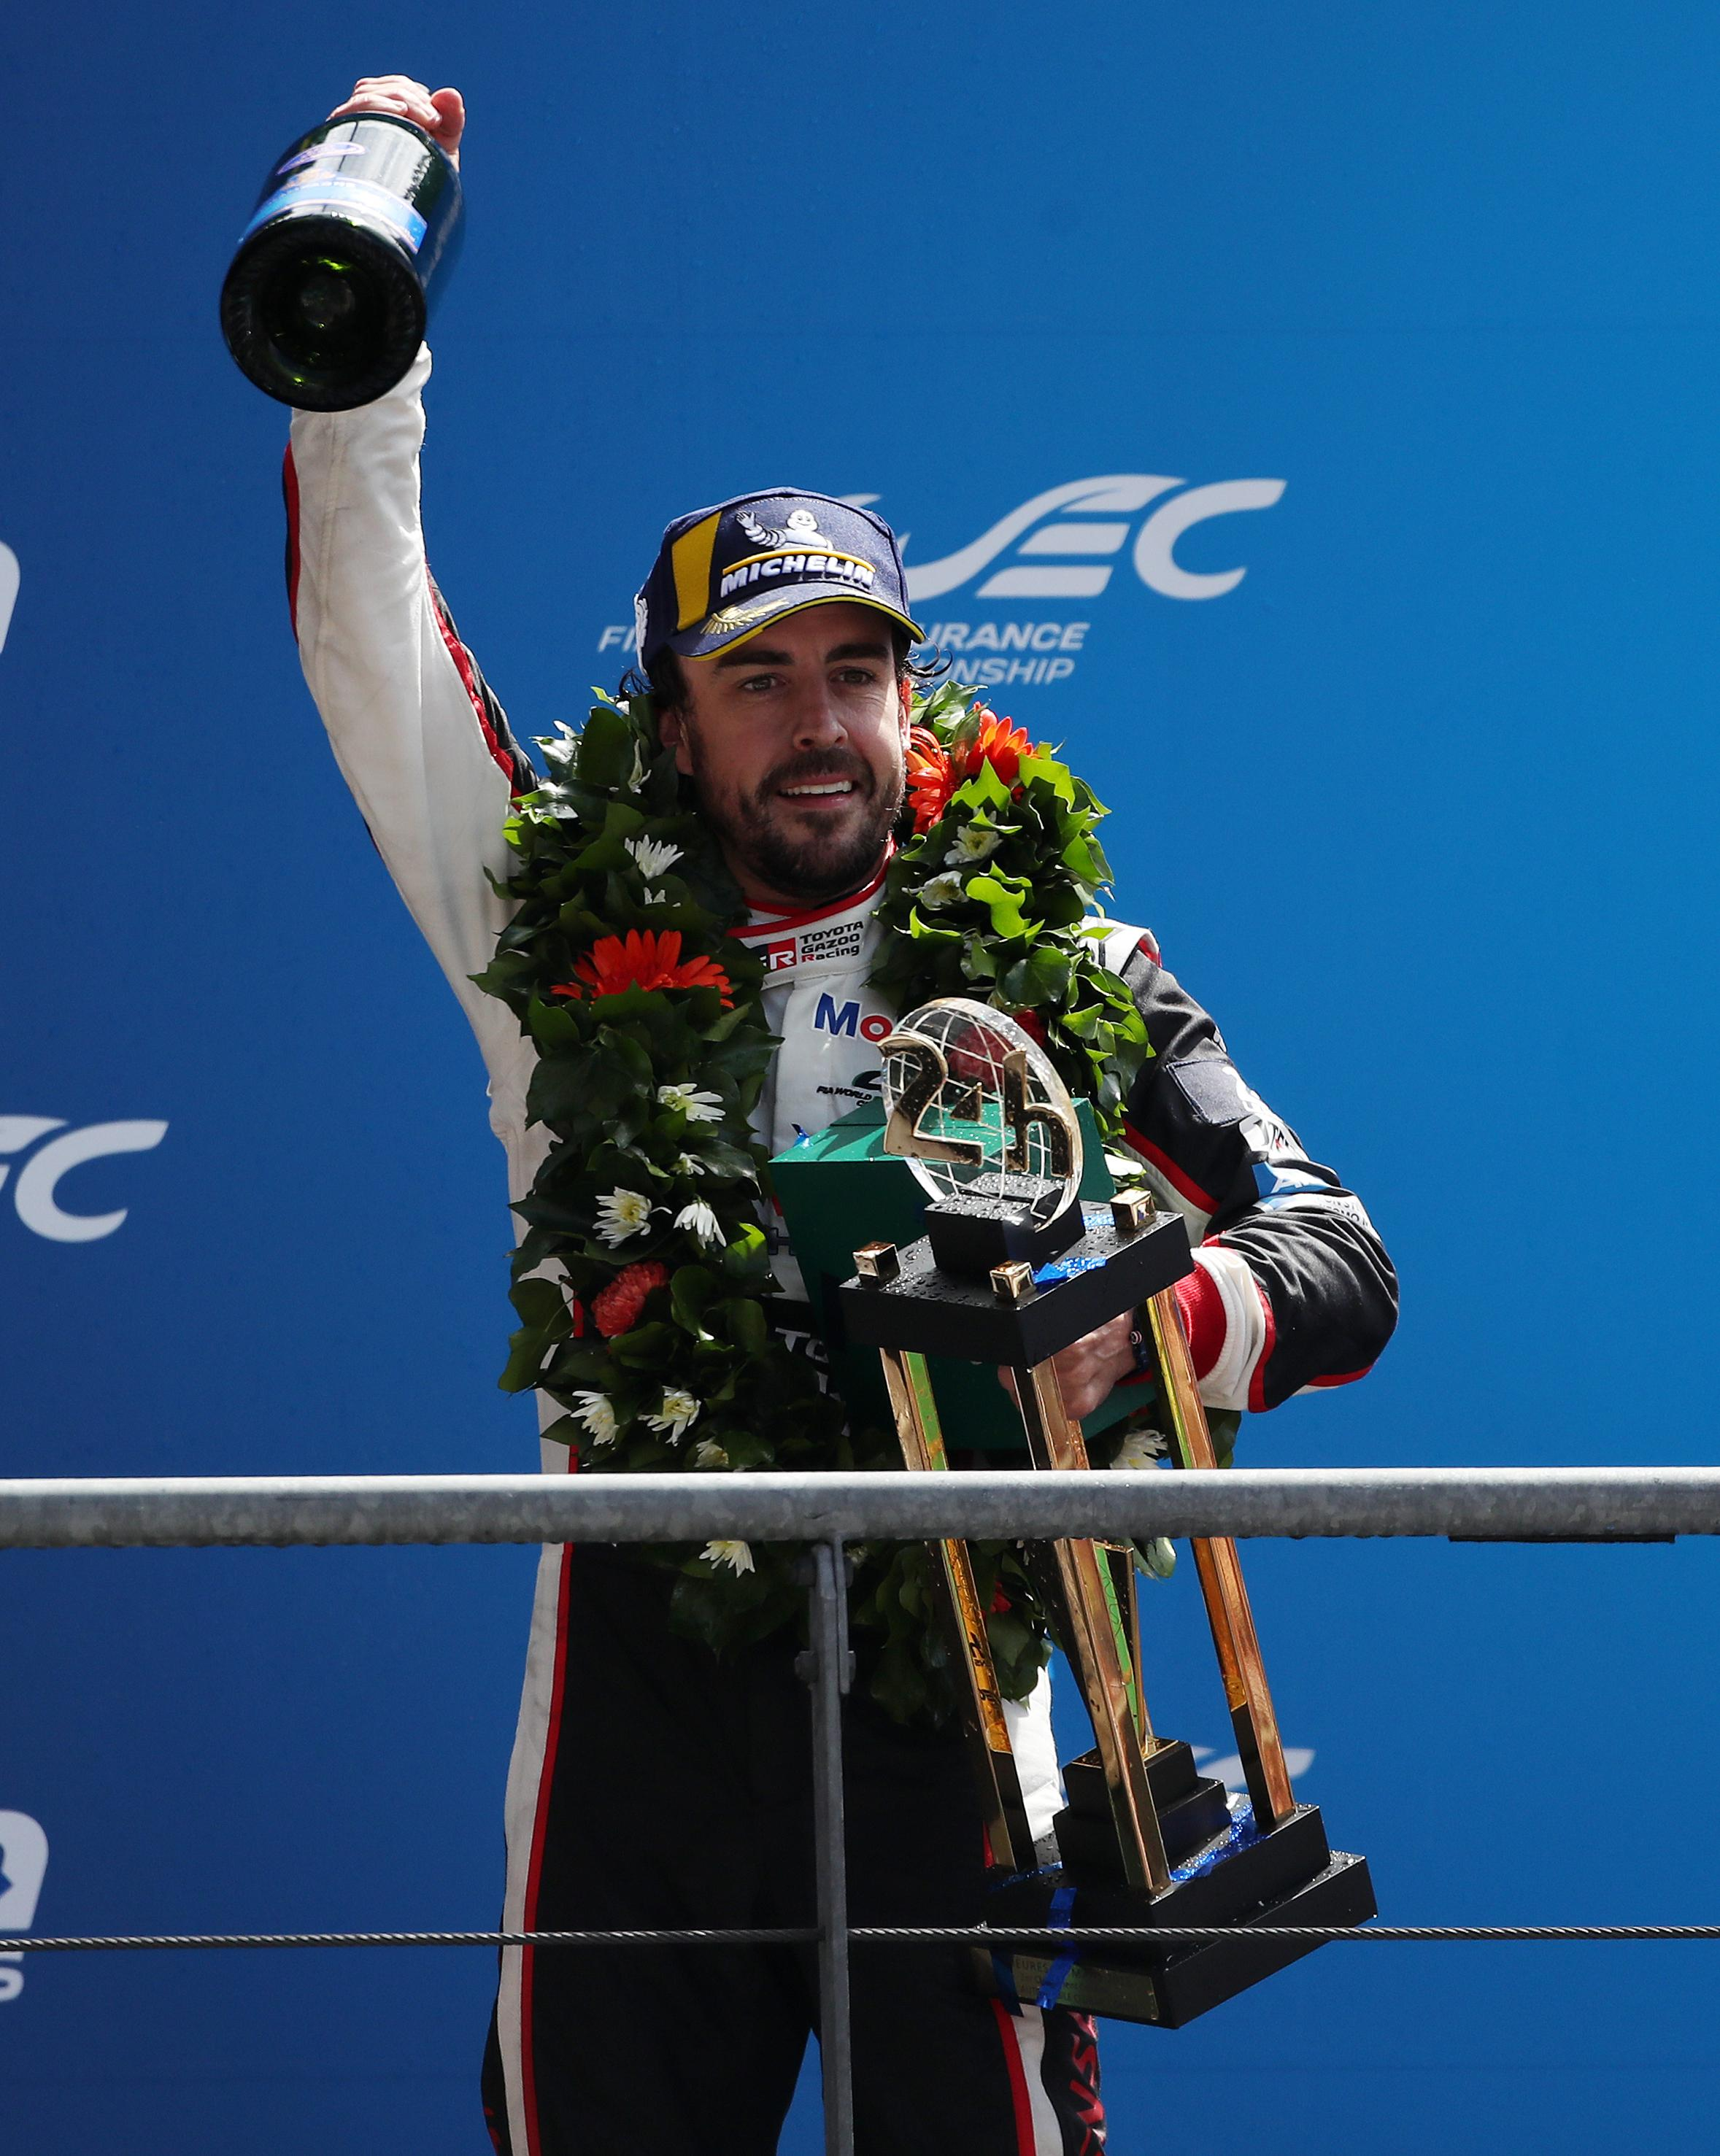 Fernando Alonso has moved into endurance racing and won Le Mans in 2018